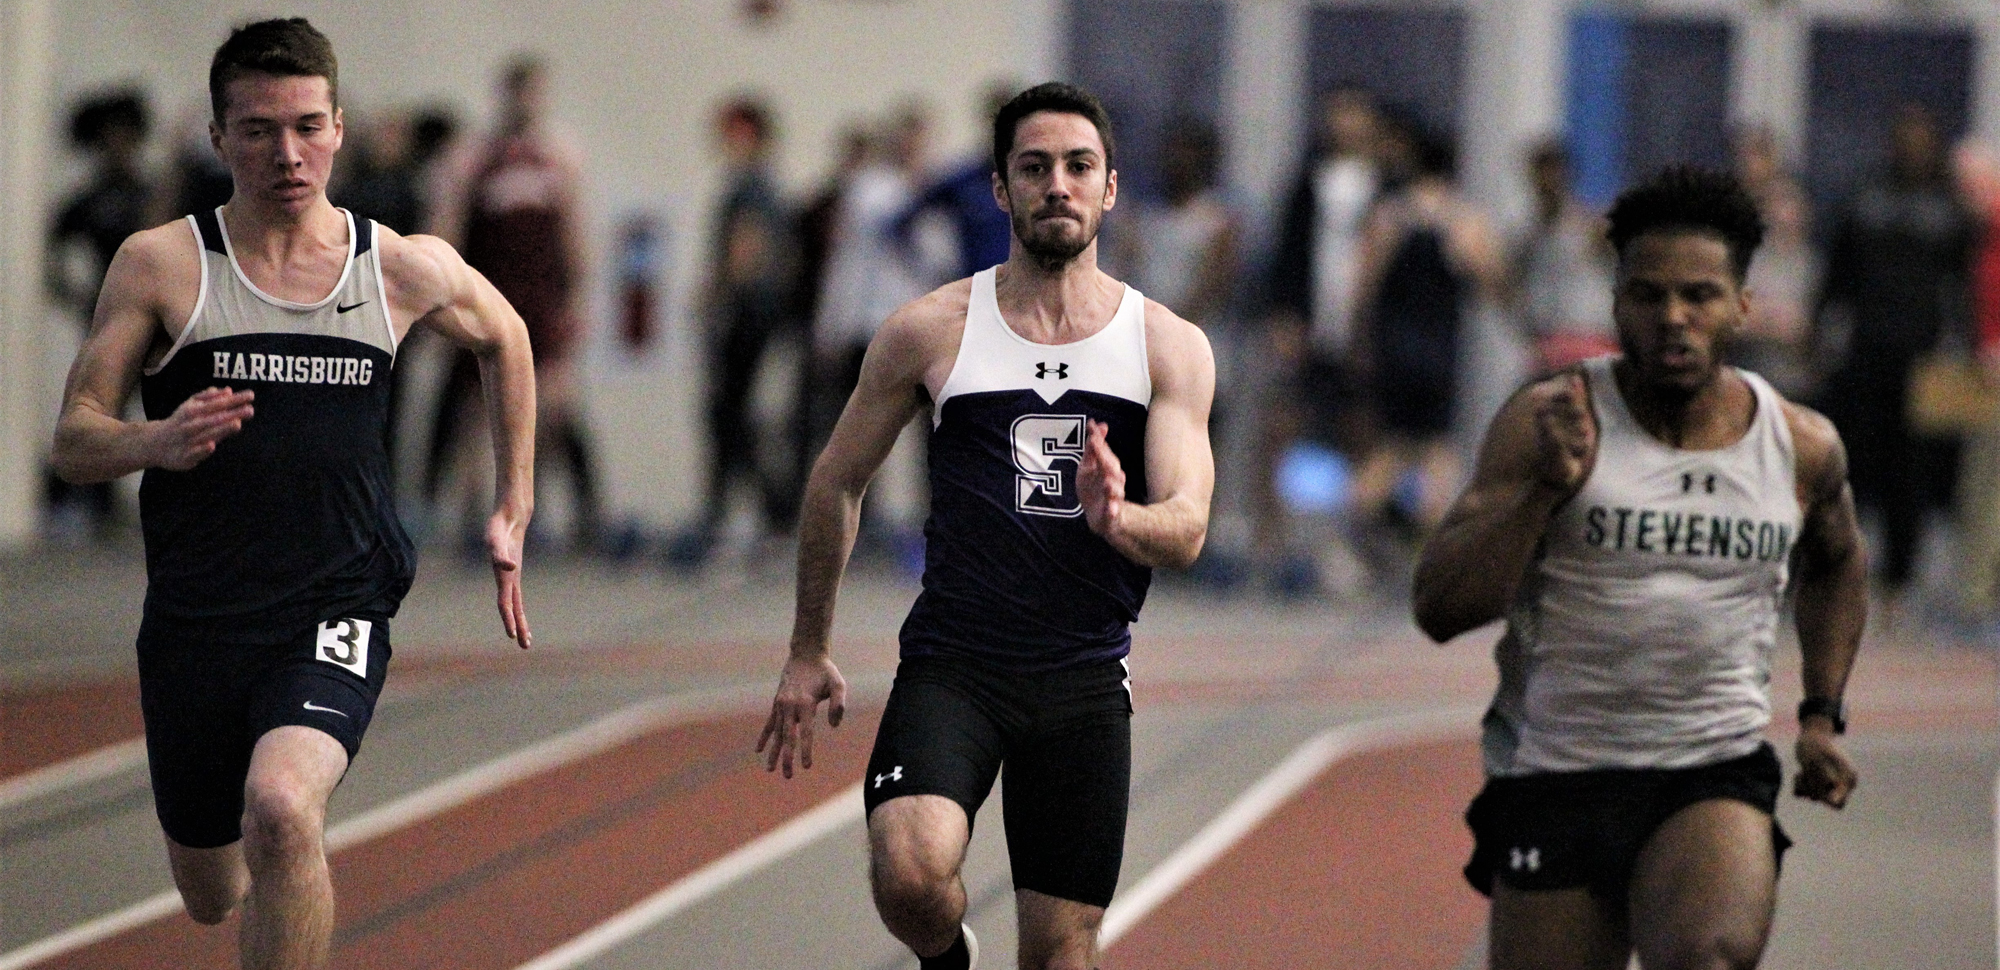 Mark Merli led Scranton by finishing 13th in the long jump on Saturday at the Moravian Indoor Invitational.